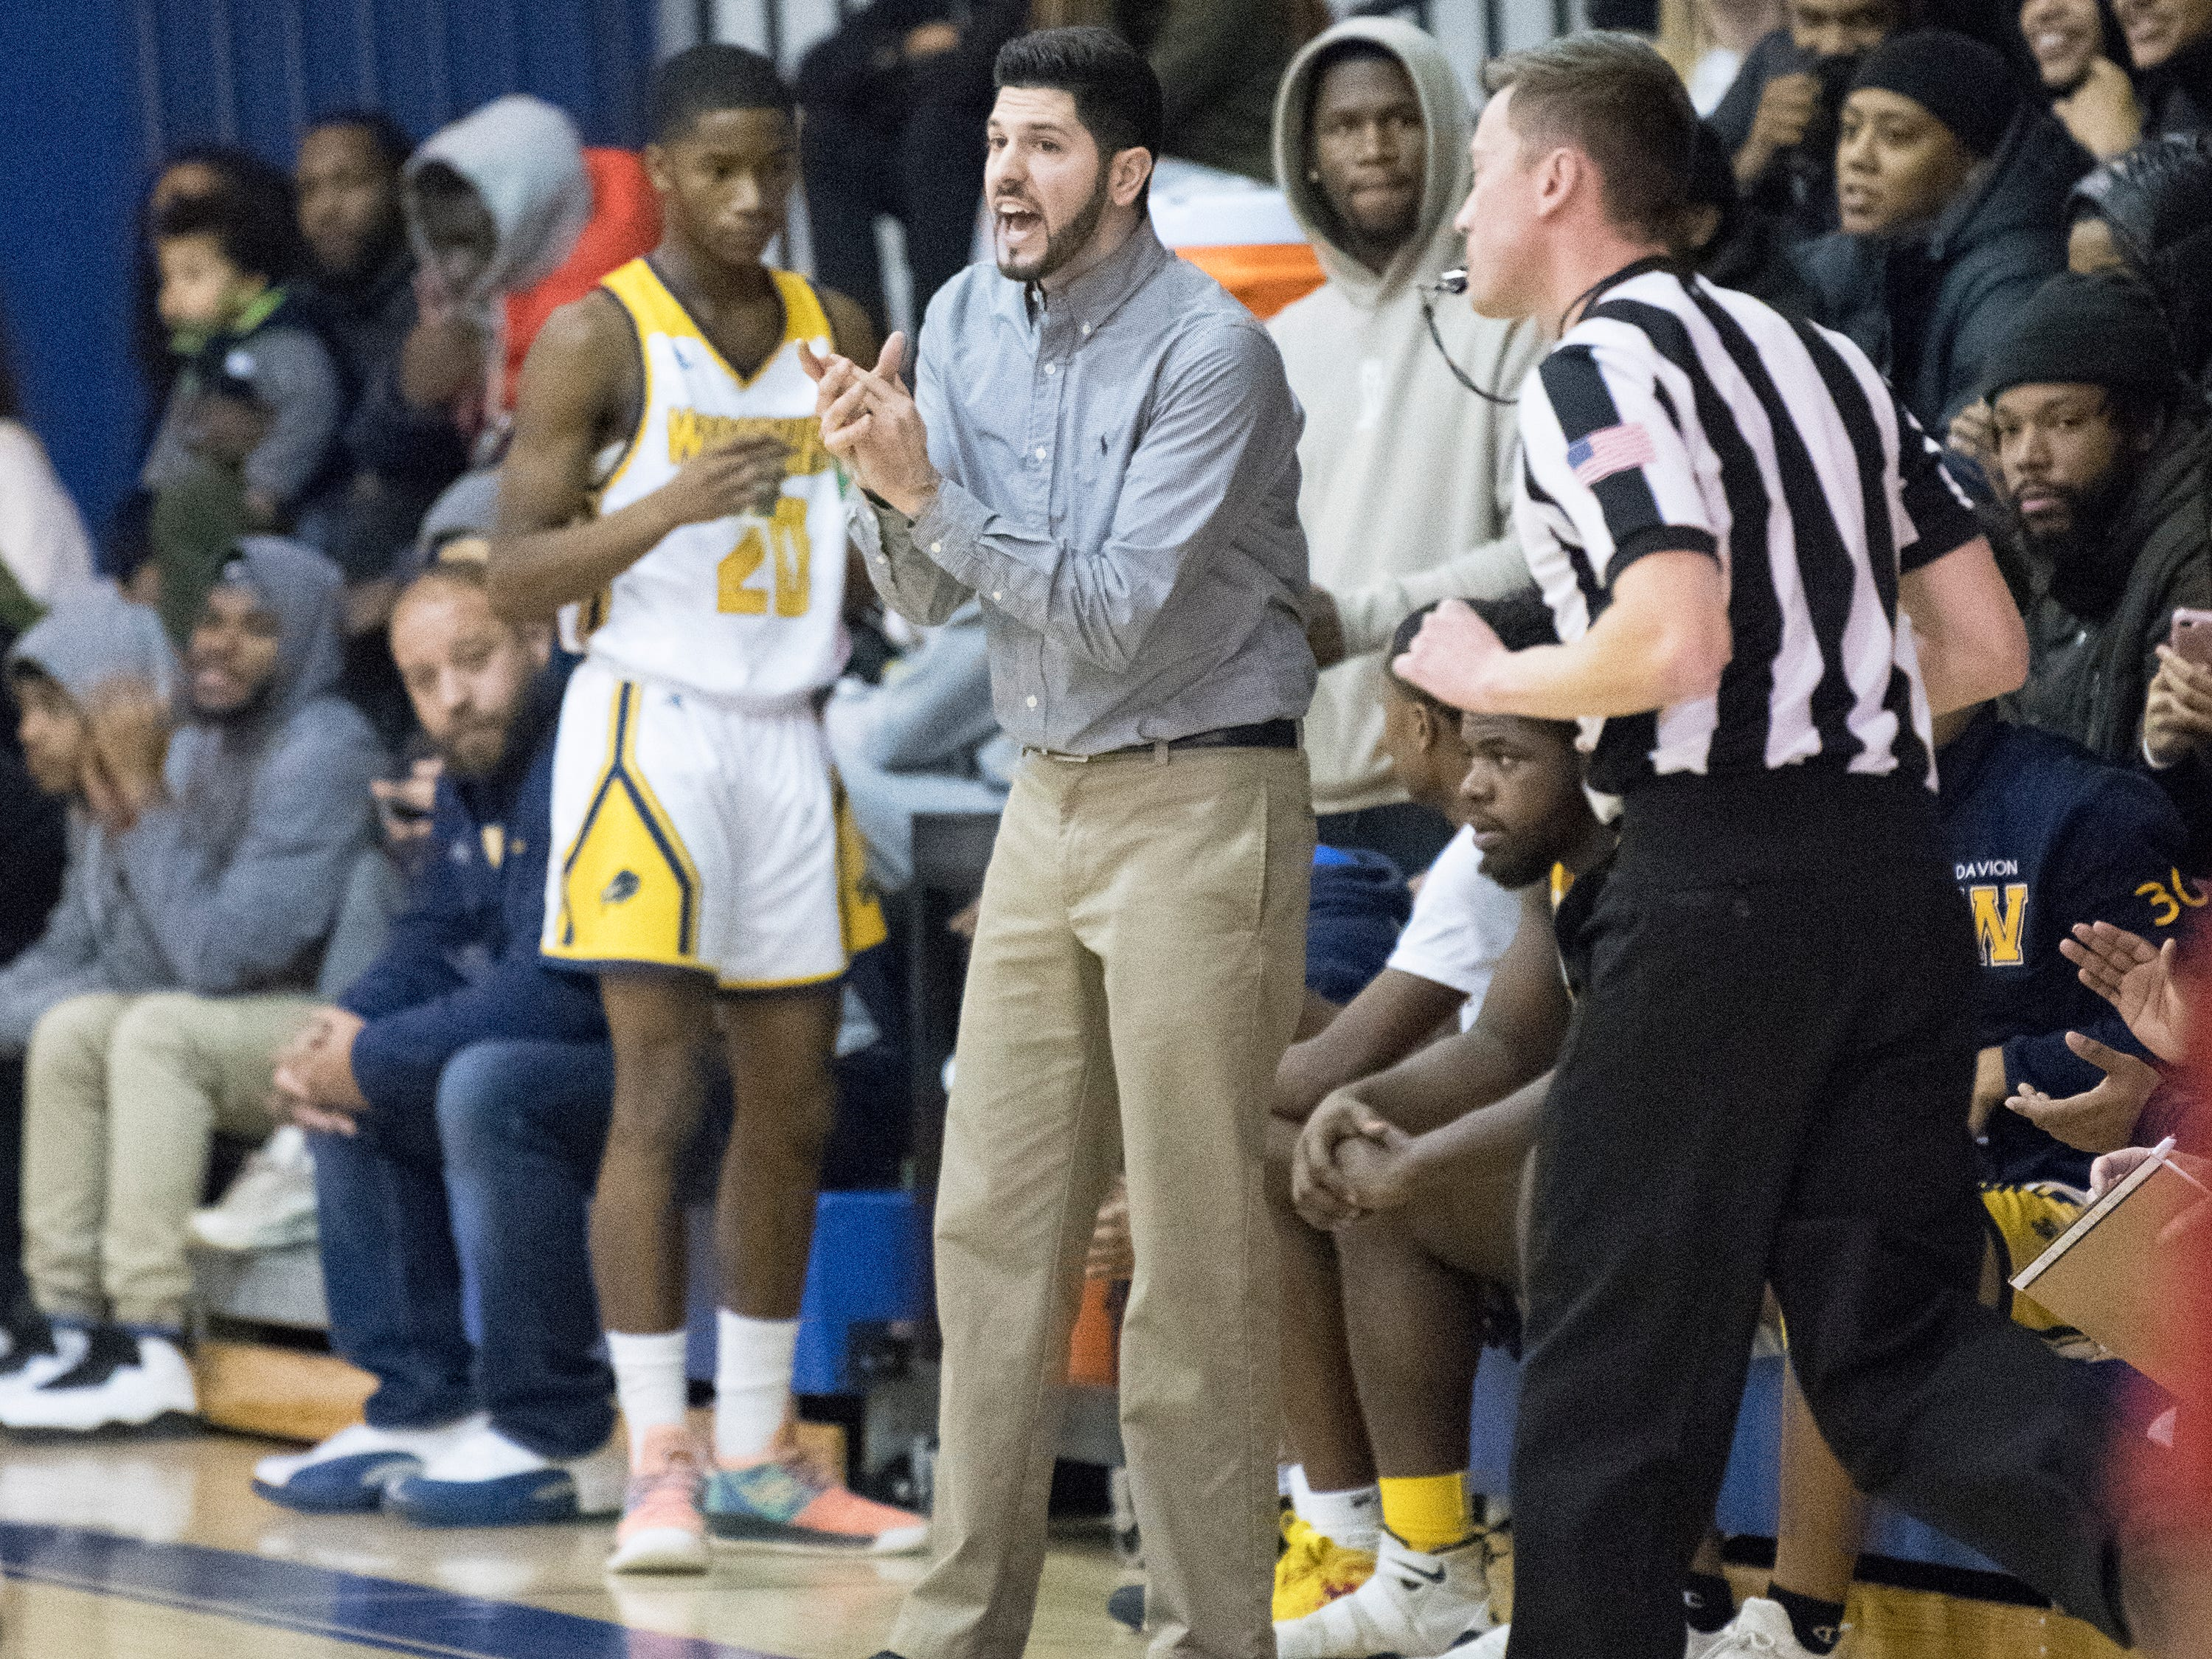 Woodbury High School's boys basketball coach Joe Albano cheers on his players as they face Paulsboro in the South Jersey Group 1, first round boys basketball playoff game played at Woodbury High School on Tuesday, February 26, 2019.   Woodbury defeated Paulsboro, 69-41.